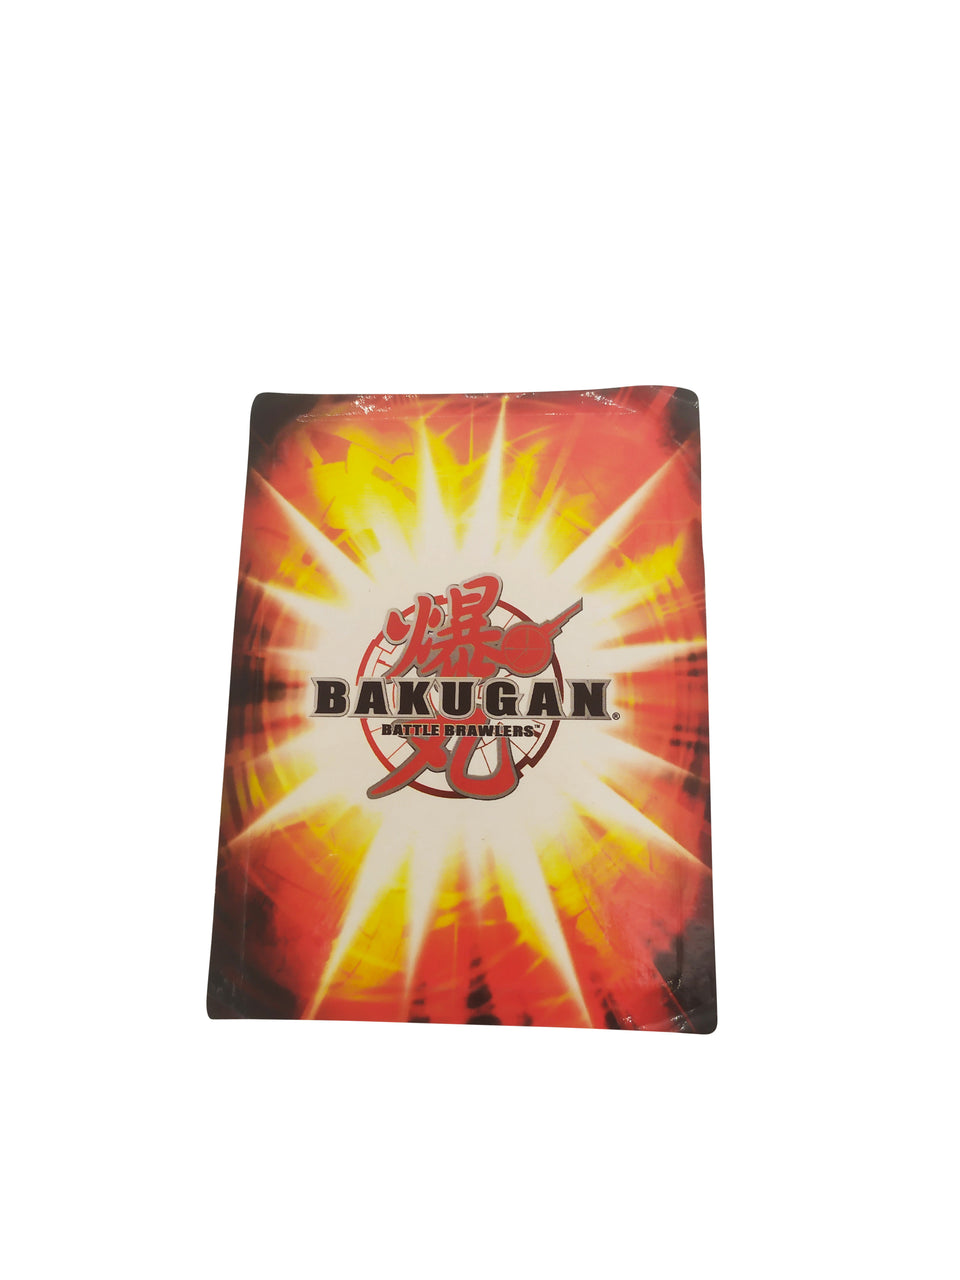 bakugan battle brawlers - silver shot - red card - 2011